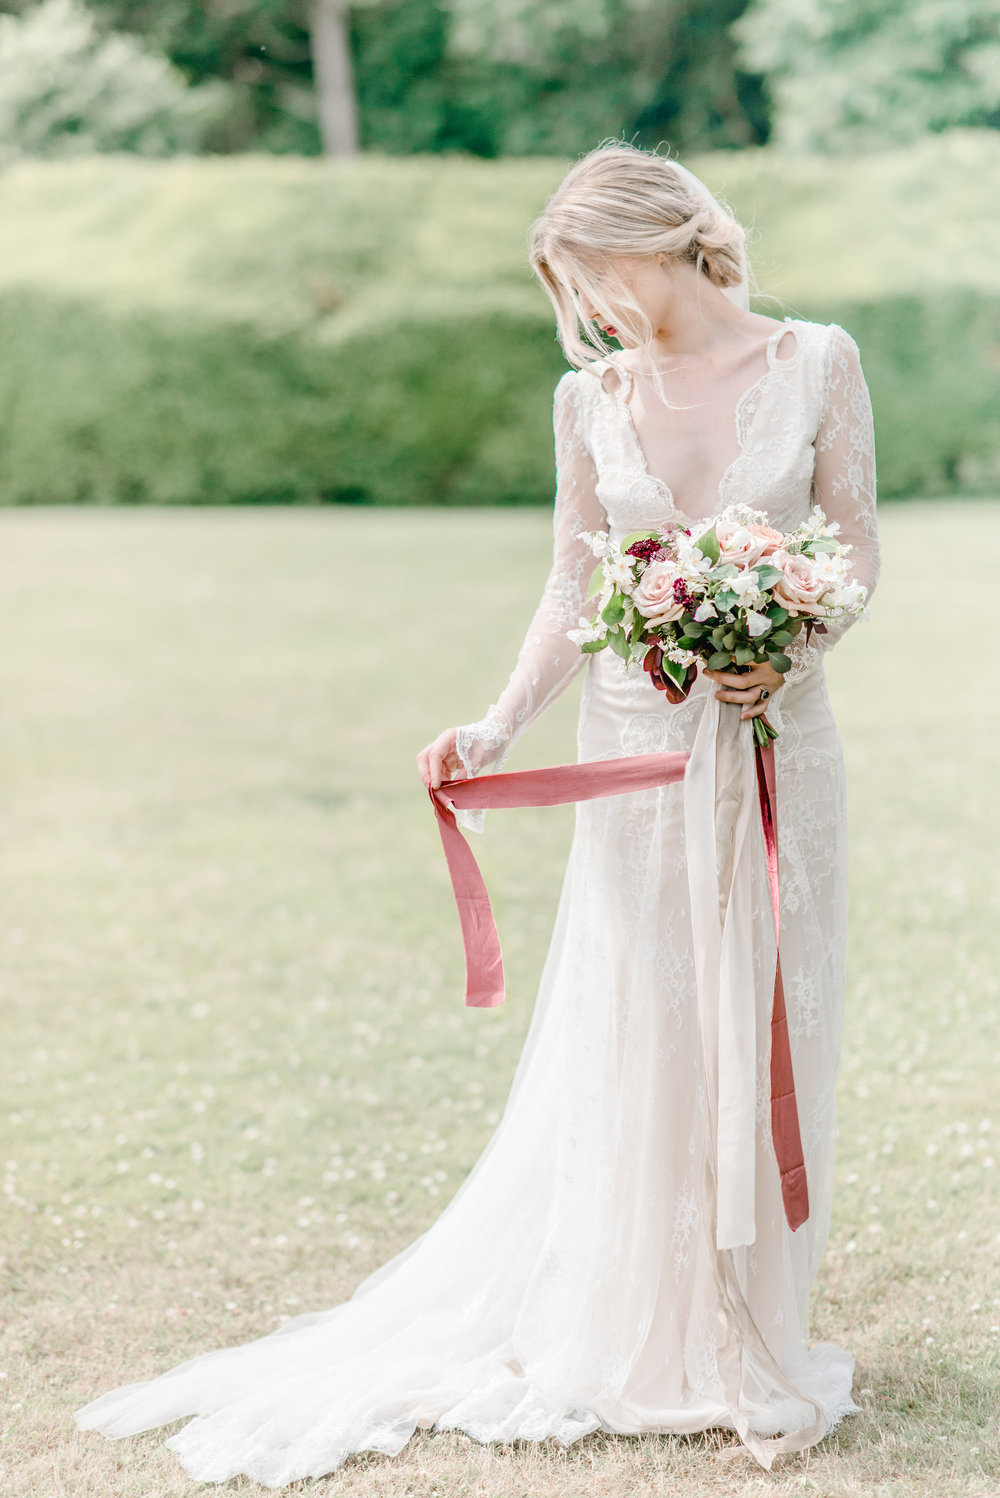 The Timeless Stylist-Elegant and Romantic Wedding Styling-Timeless Bridal Look